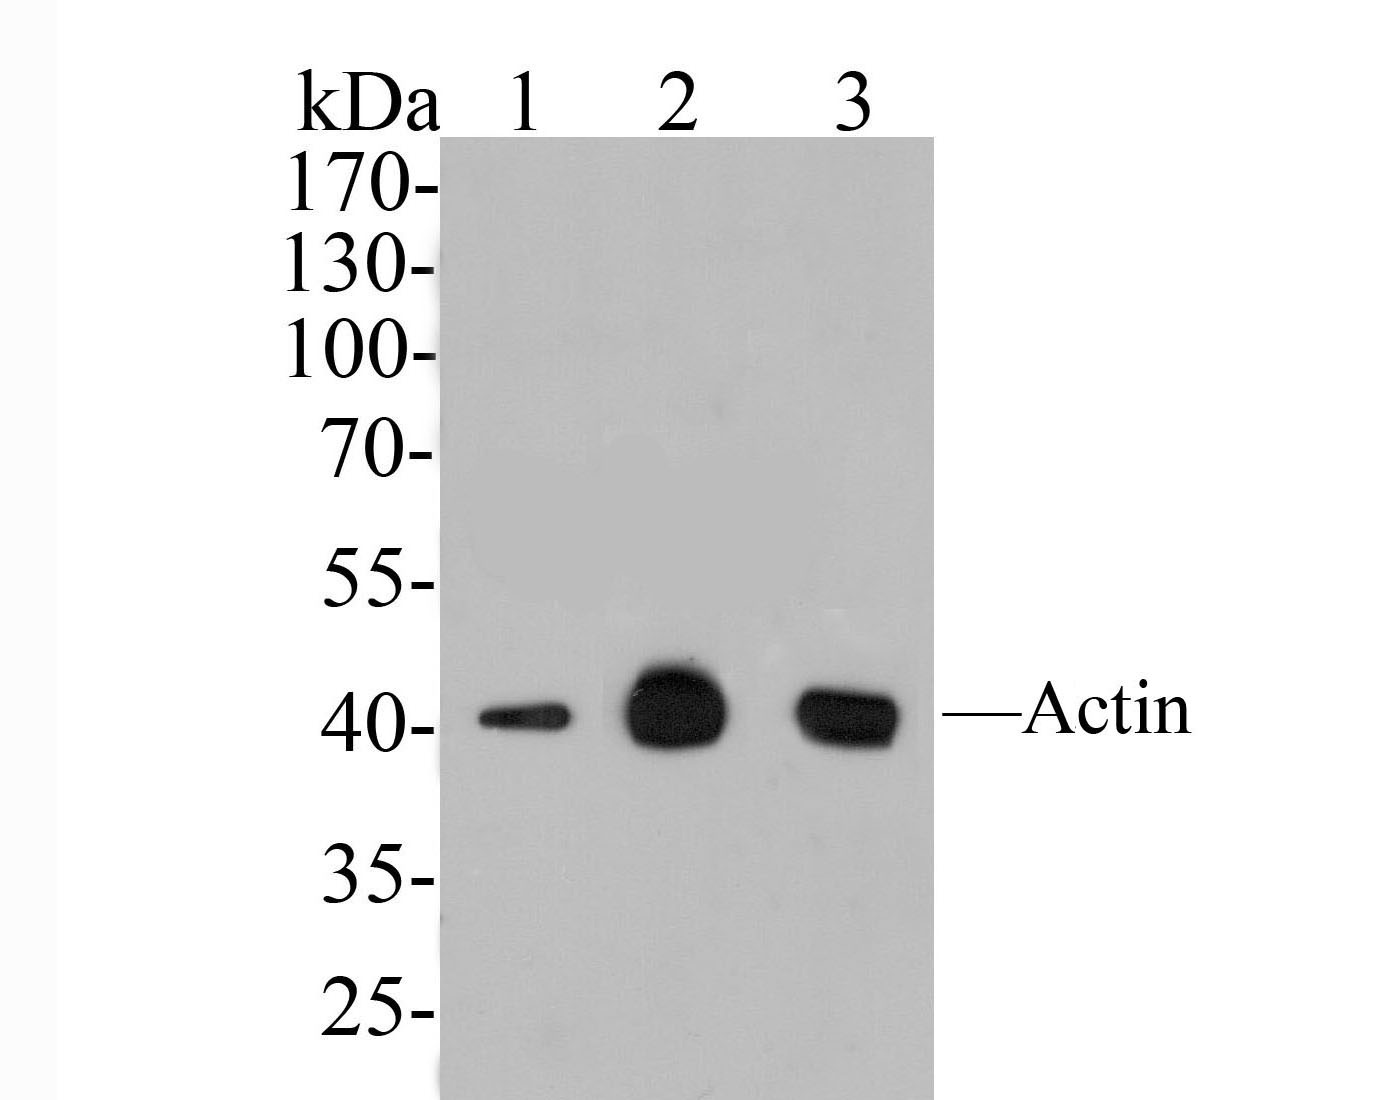 Western blot analysis of Pan-Actin on different lysates. Proteins were transferred to a PVDF membrane and blocked with 5% BSA in PBS for 1 hour at room temperature. The primary antibody (HA600032, 1/1000) was used in 5% BSA at room temperature for 2 hours. Goat Anti-Mouse IgG - HRP Secondary Antibody (HA1006) at 1:5,000 dilution was used for 1 hour at room temperature.<br /> Positive control: <br /> Lane 1: Rat heart tissue lysate<br /> Lane 1: Mouse smooth muscle tissue lysate<br /> Lane 1: Human skeletal muscle tissue lysate